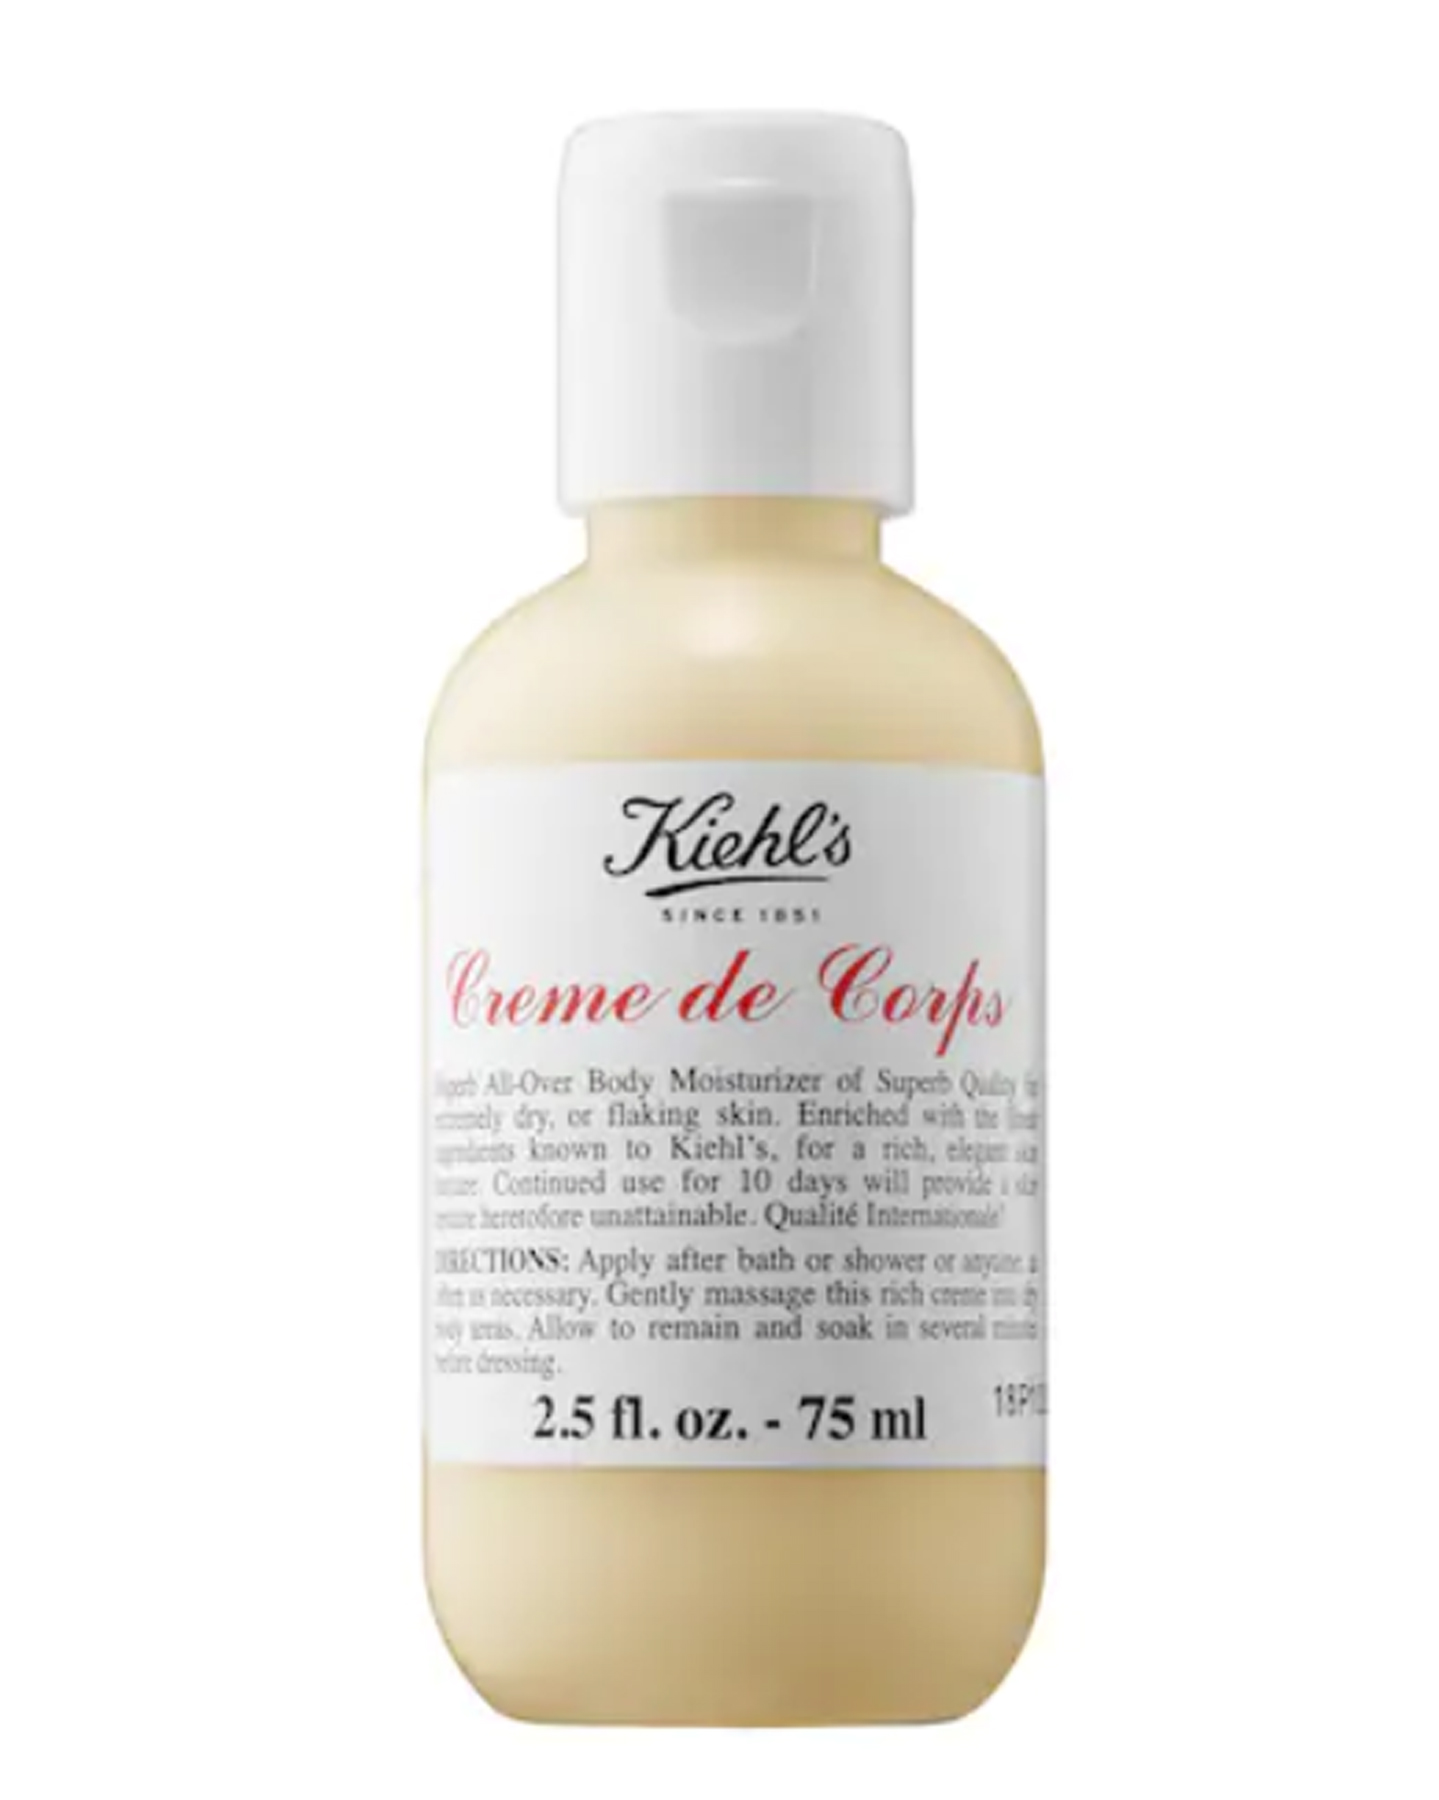 Cheap Stocking Stuffer Ideas: Kiehls